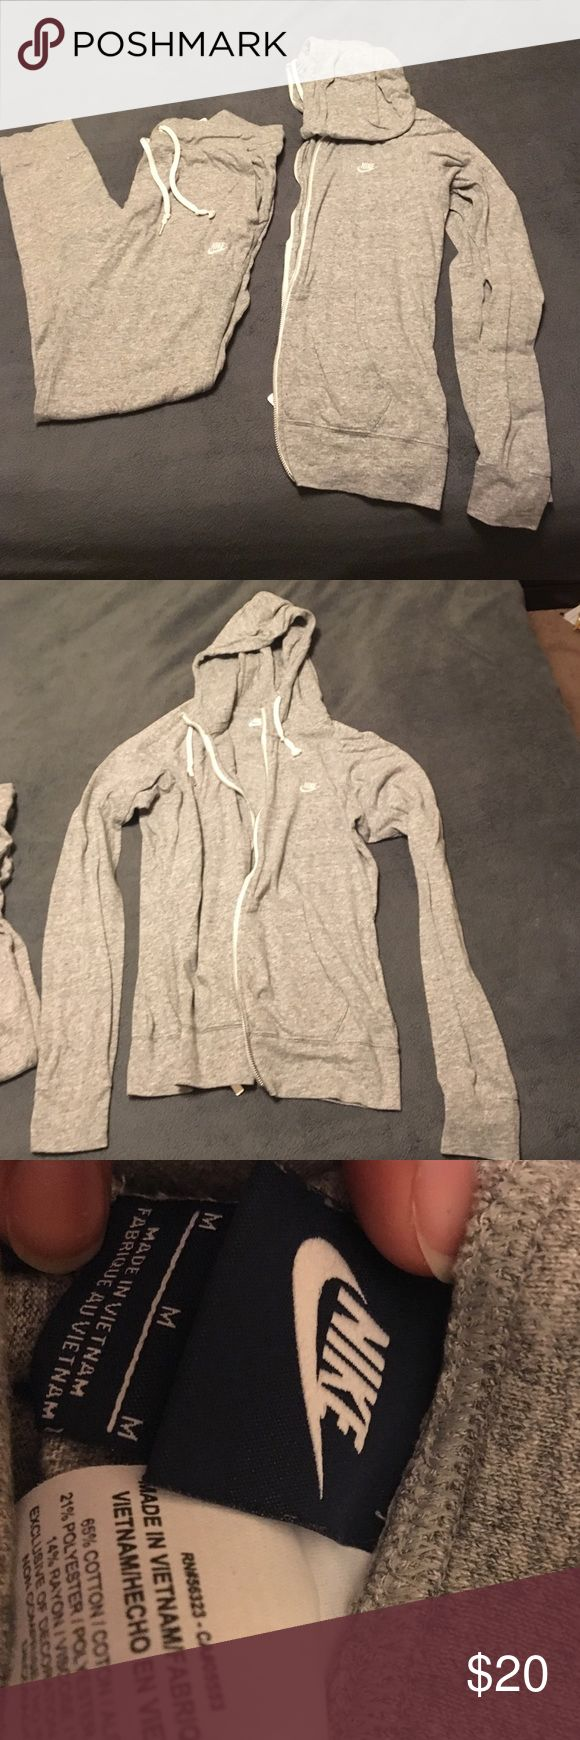 NIKE sweat suit! Super cute Nike sweat suit I can no longer fit anymore! Pants are skinny styled and top is just regular zip up jacket. Size M. Great condition. Nike Other